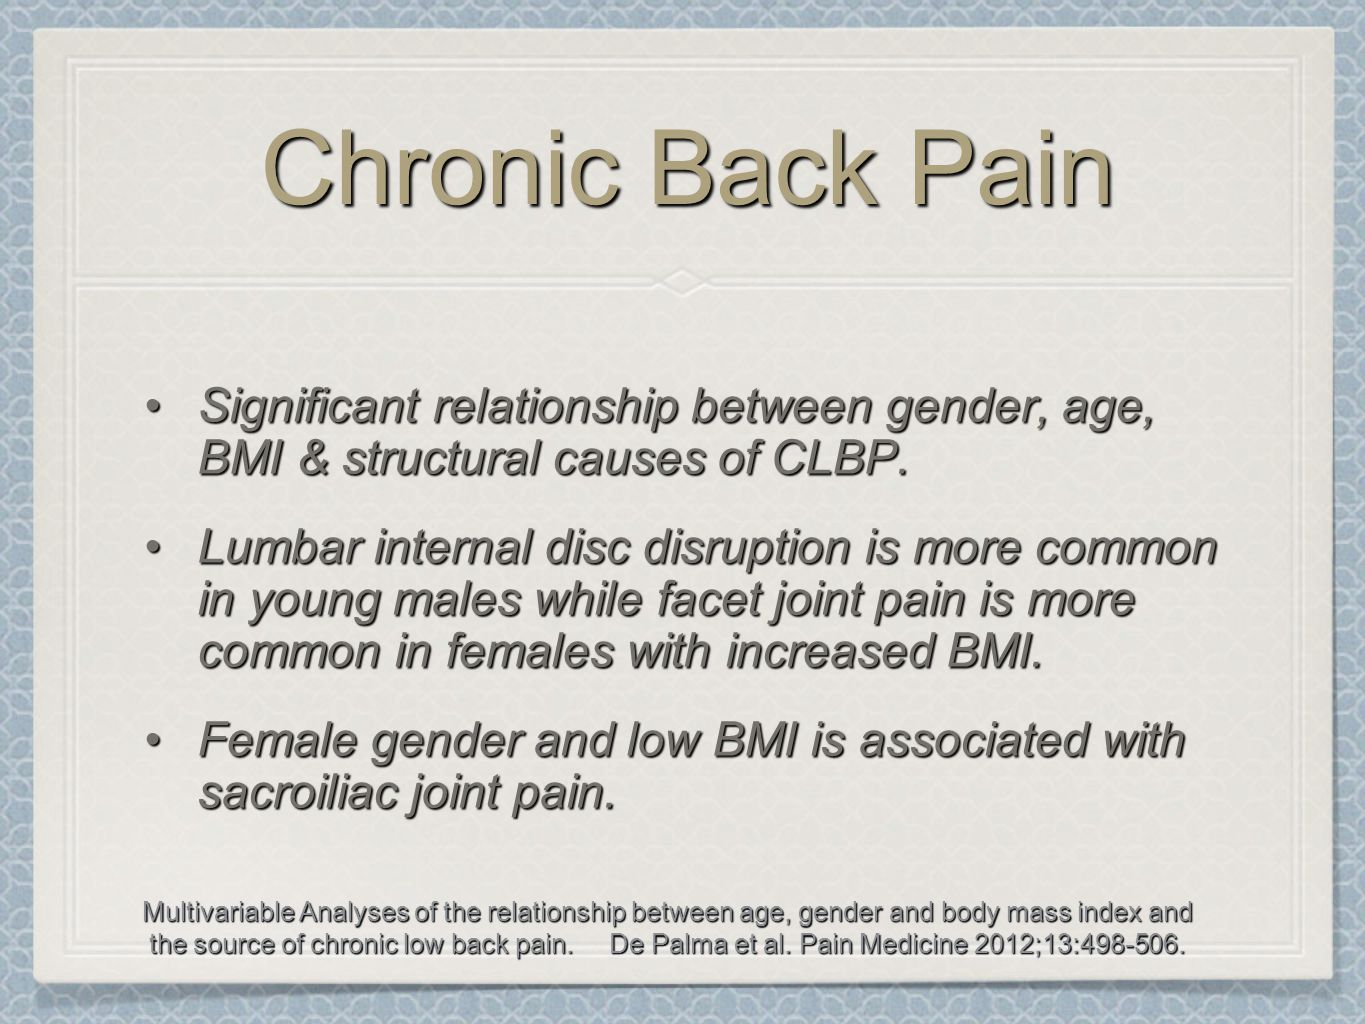 Chronic Back Pain Significant relationship between gender, age, BMI & structural causes of CLBP.Significant relationship between gender, age, BMI & st